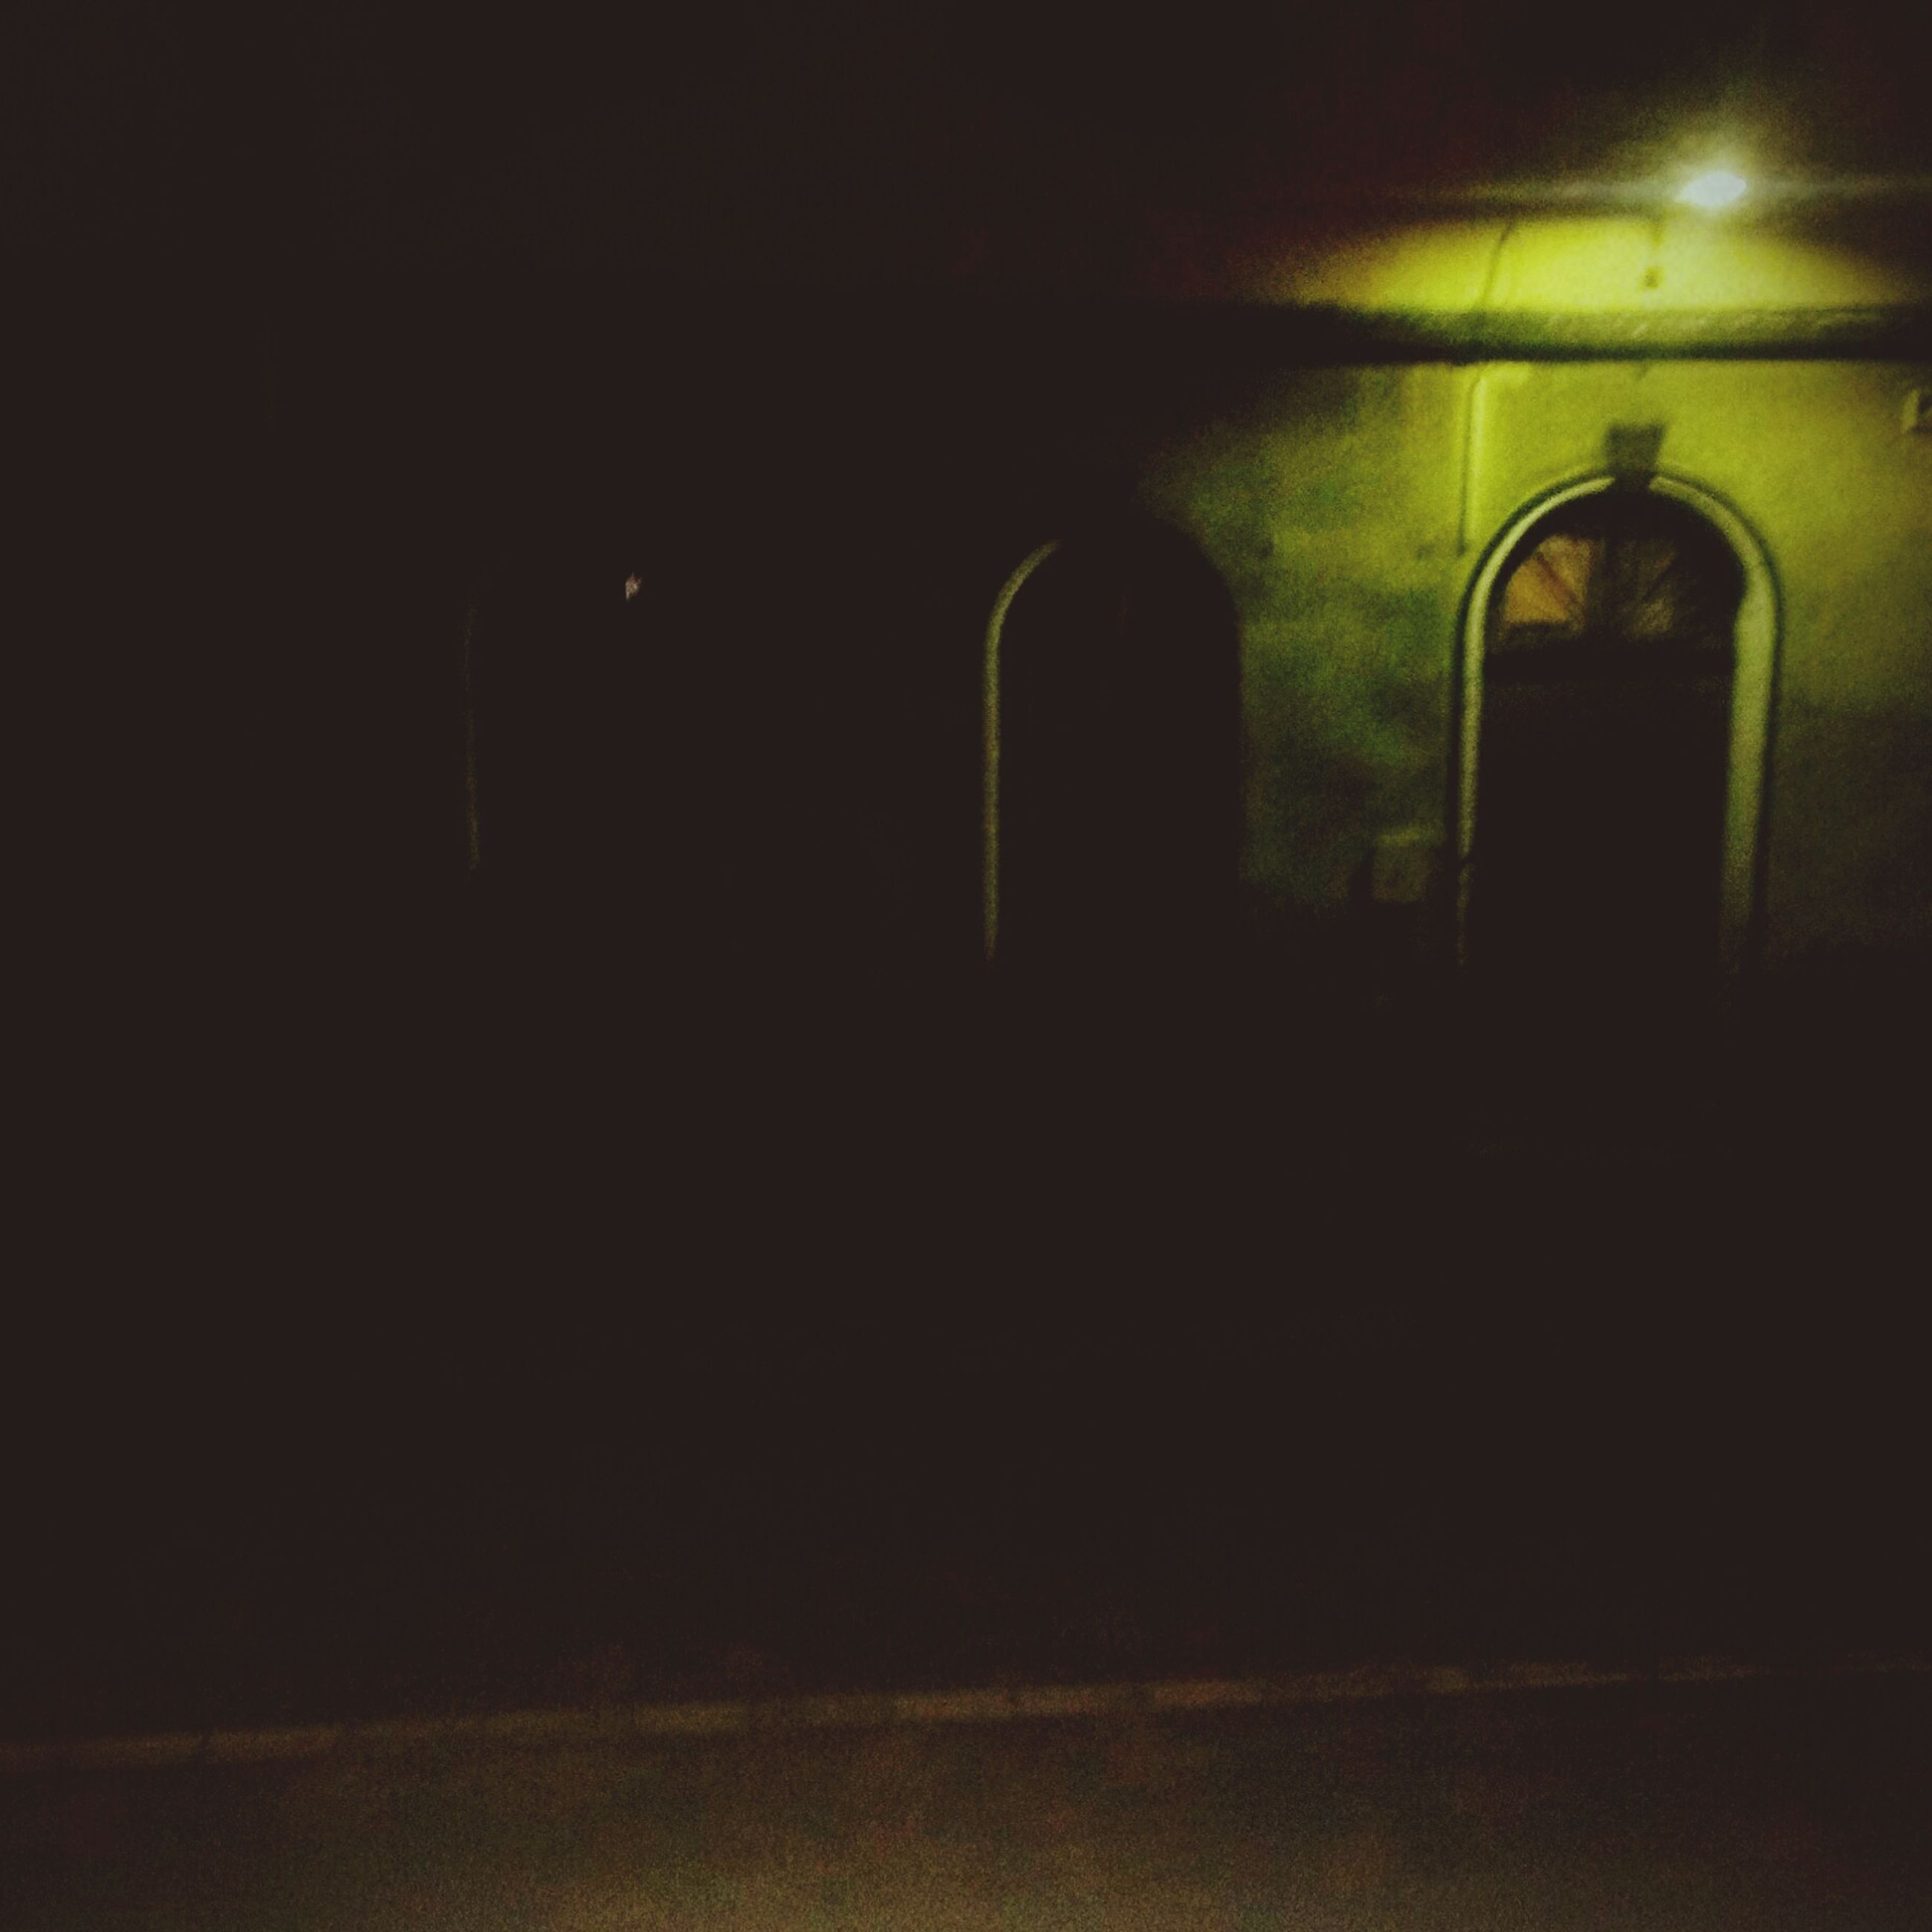 indoors, dark, built structure, architecture, copy space, window, night, illuminated, wall - building feature, silhouette, wall, arch, no people, reflection, house, lighting equipment, empty, door, darkroom, light - natural phenomenon